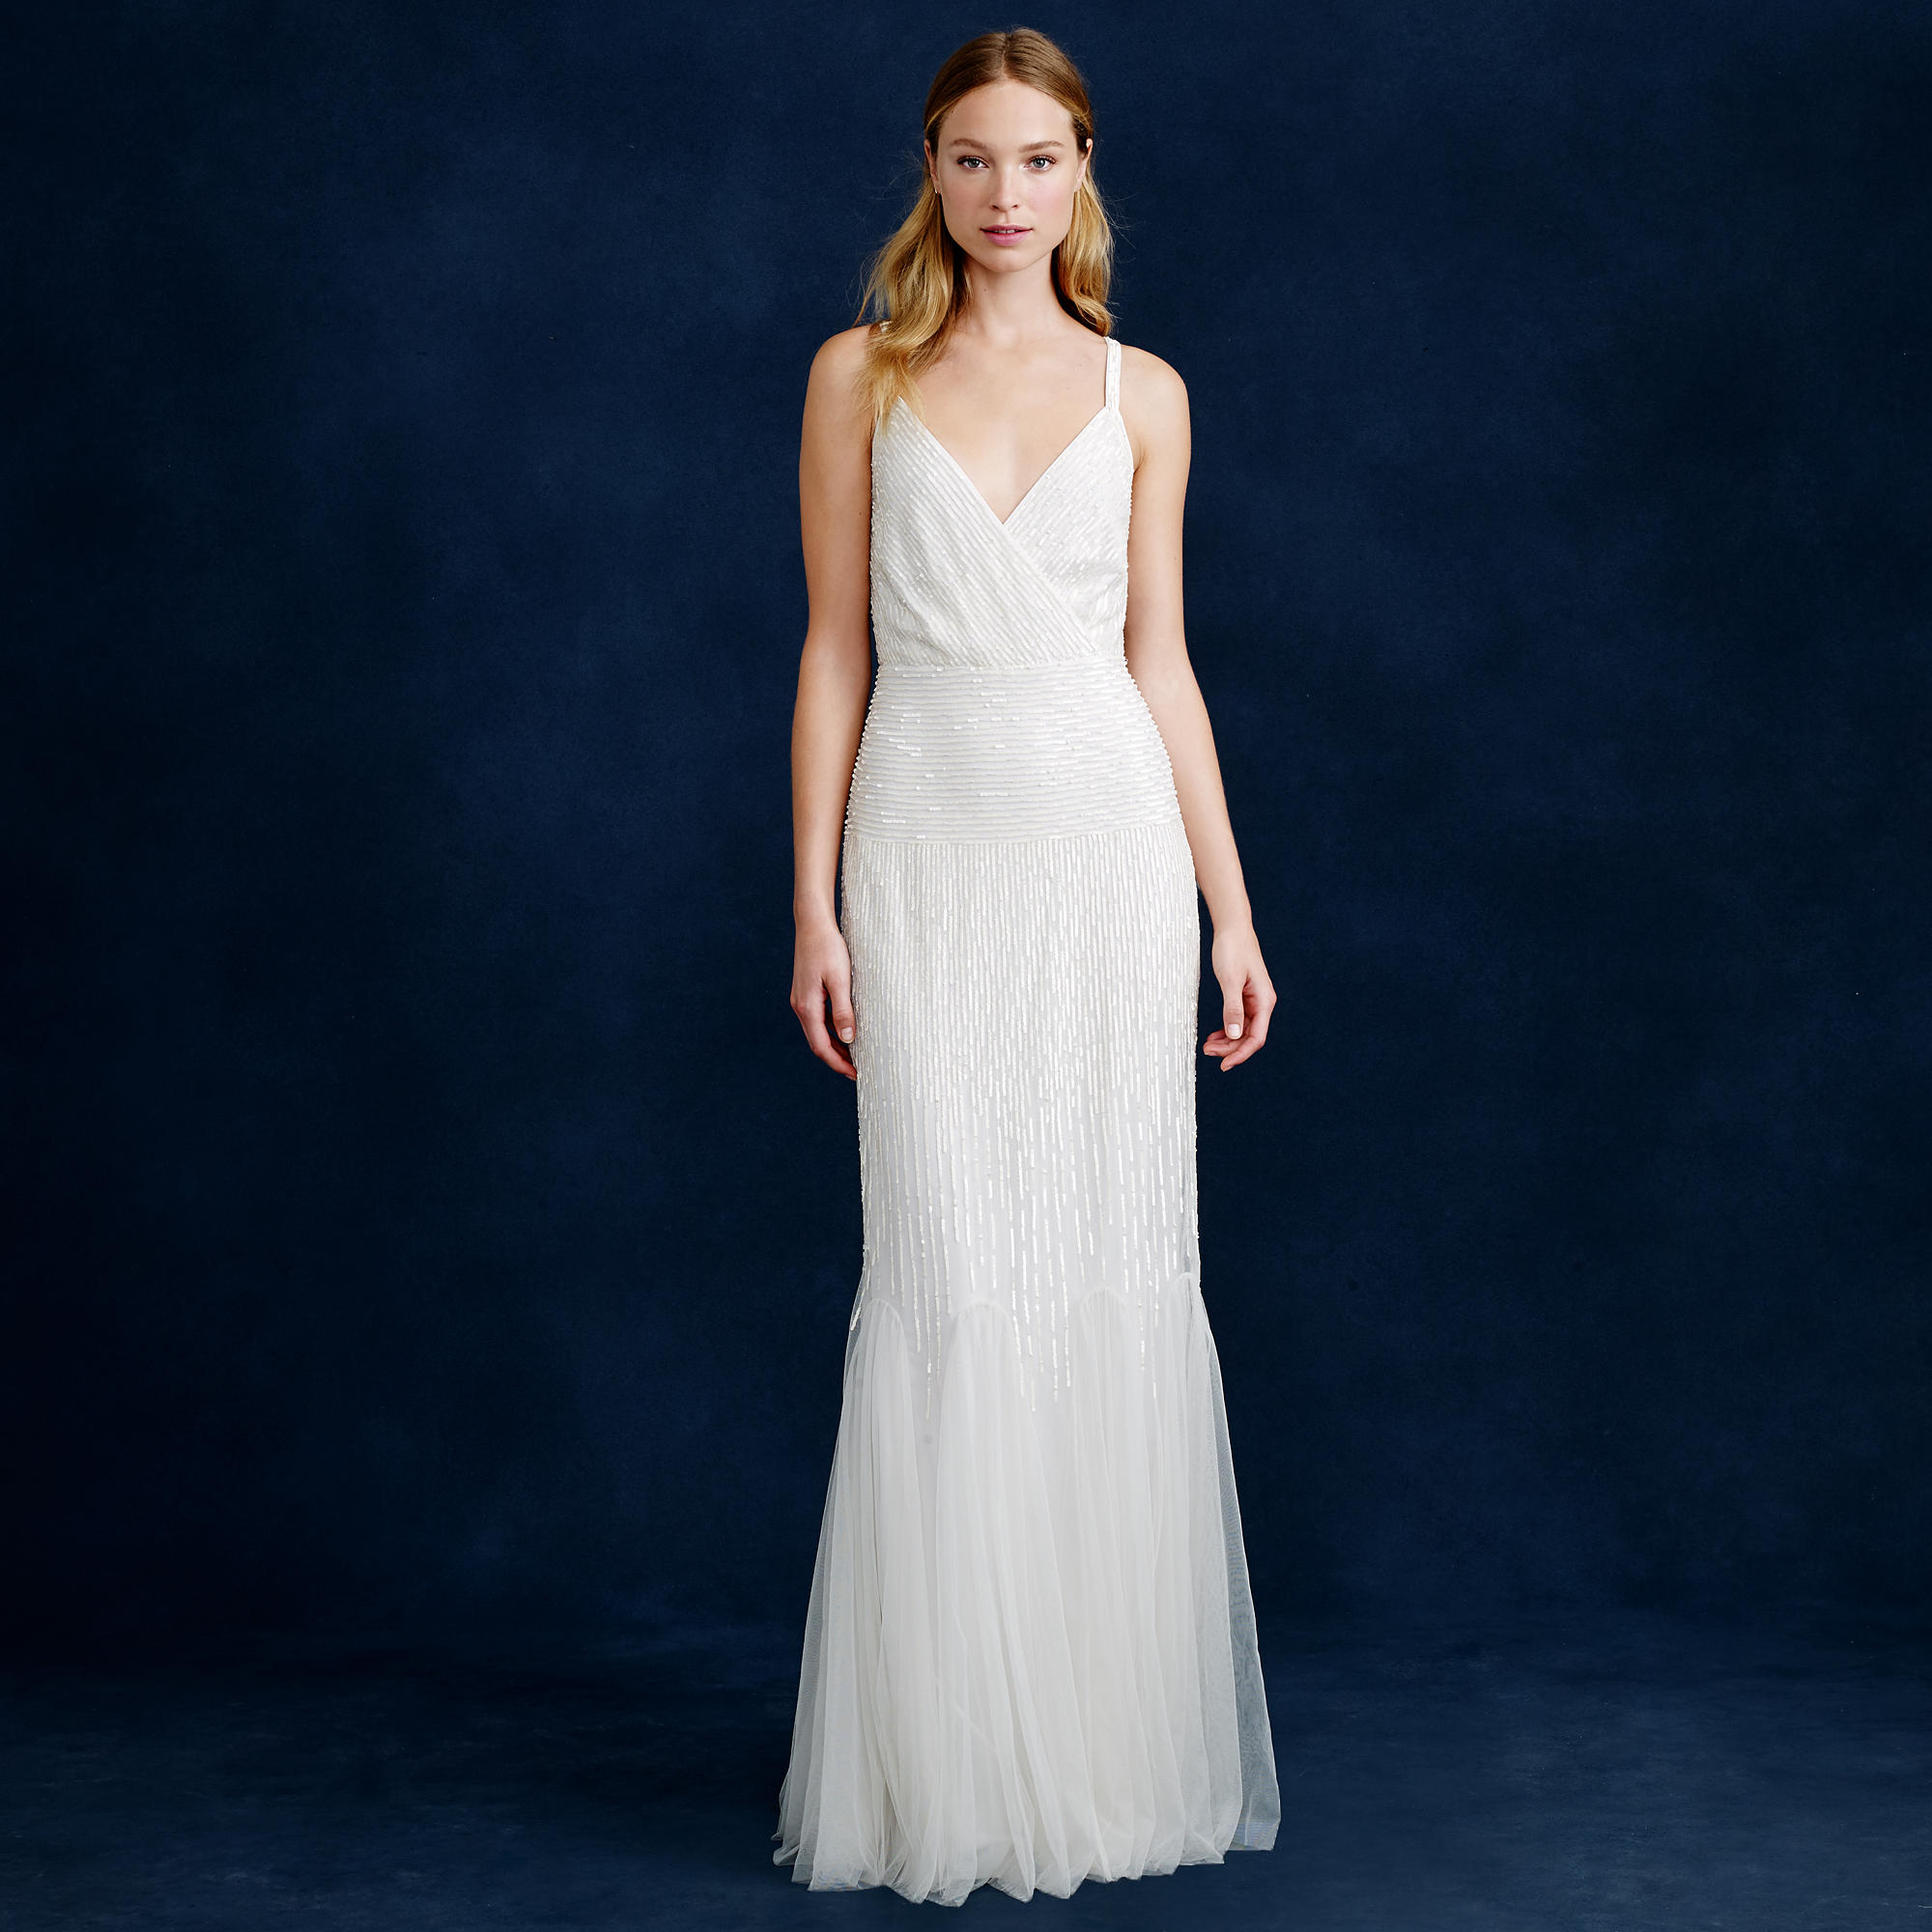 4 Of Your Favorite Brands That You Never Knew Had Bridal Lines